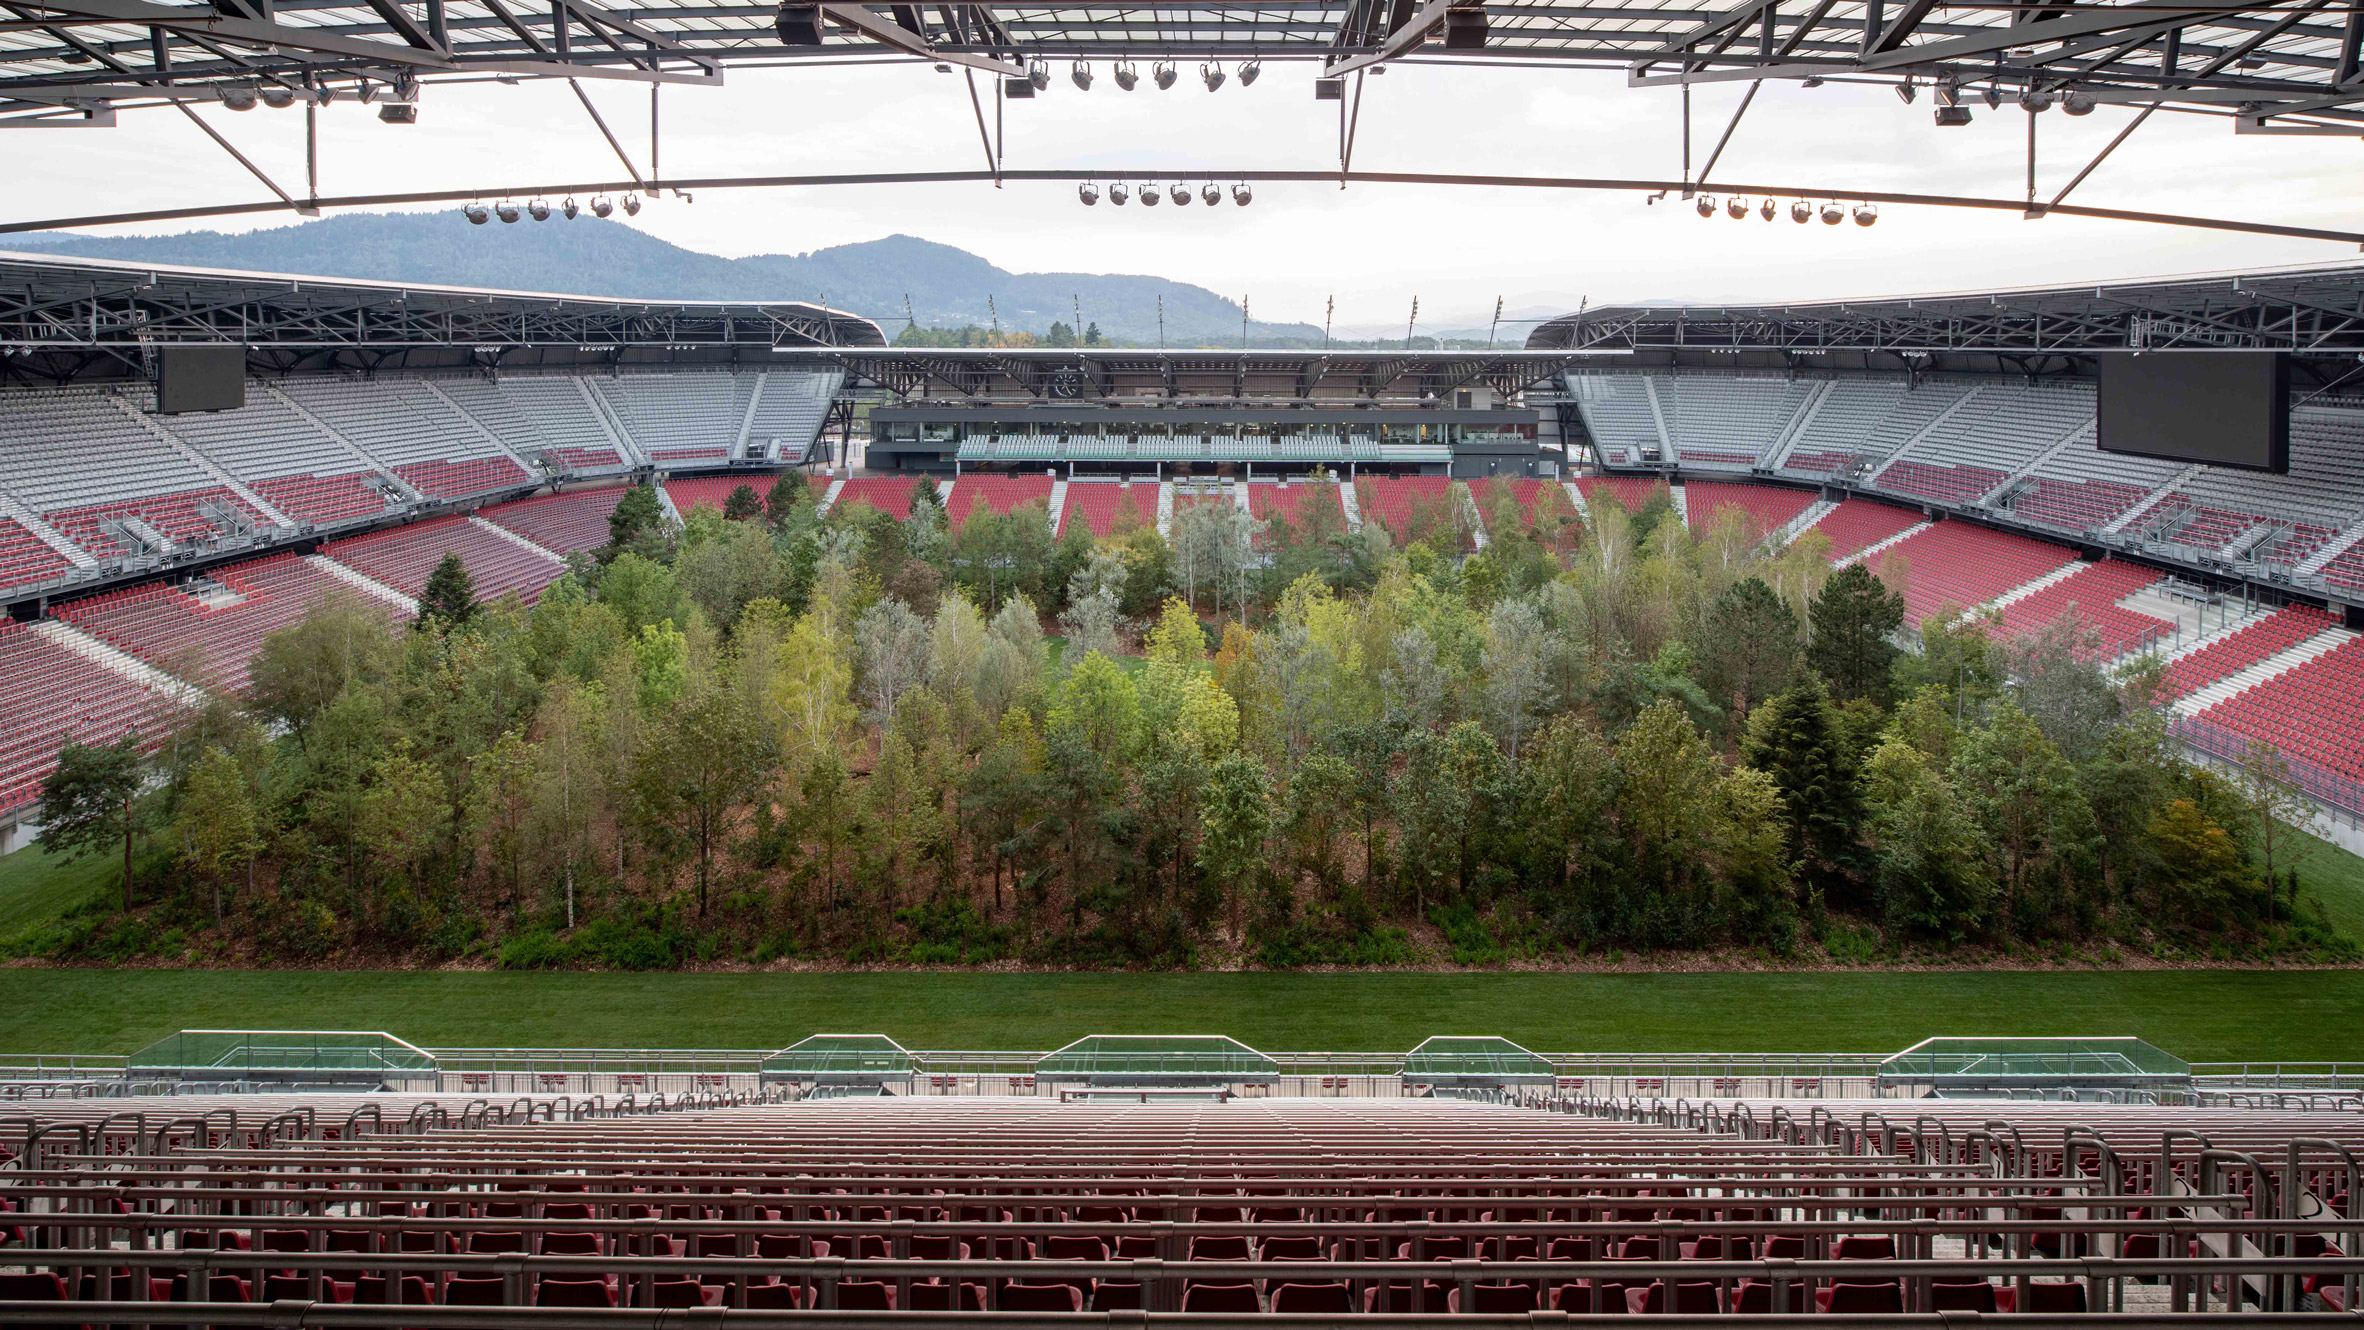 Wörthersee Stadion in Klagenfurt filled with trees